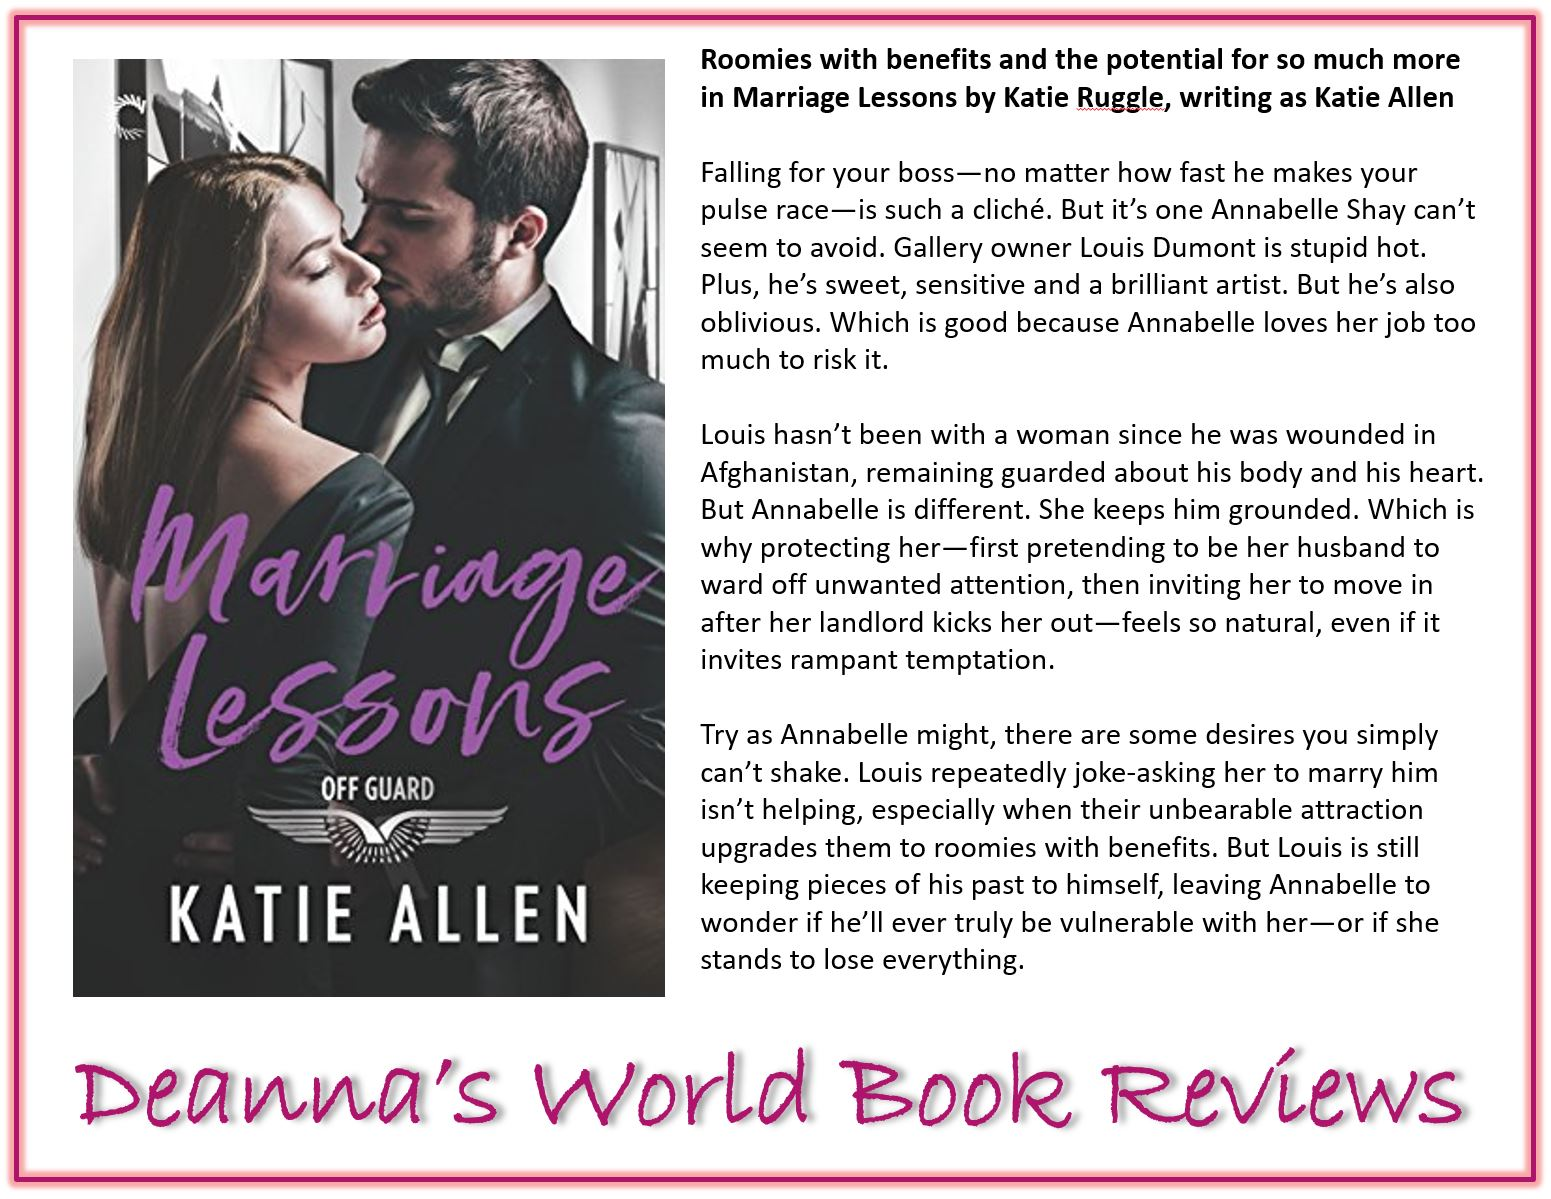 Marriage Lessons by Katie Allen blurb